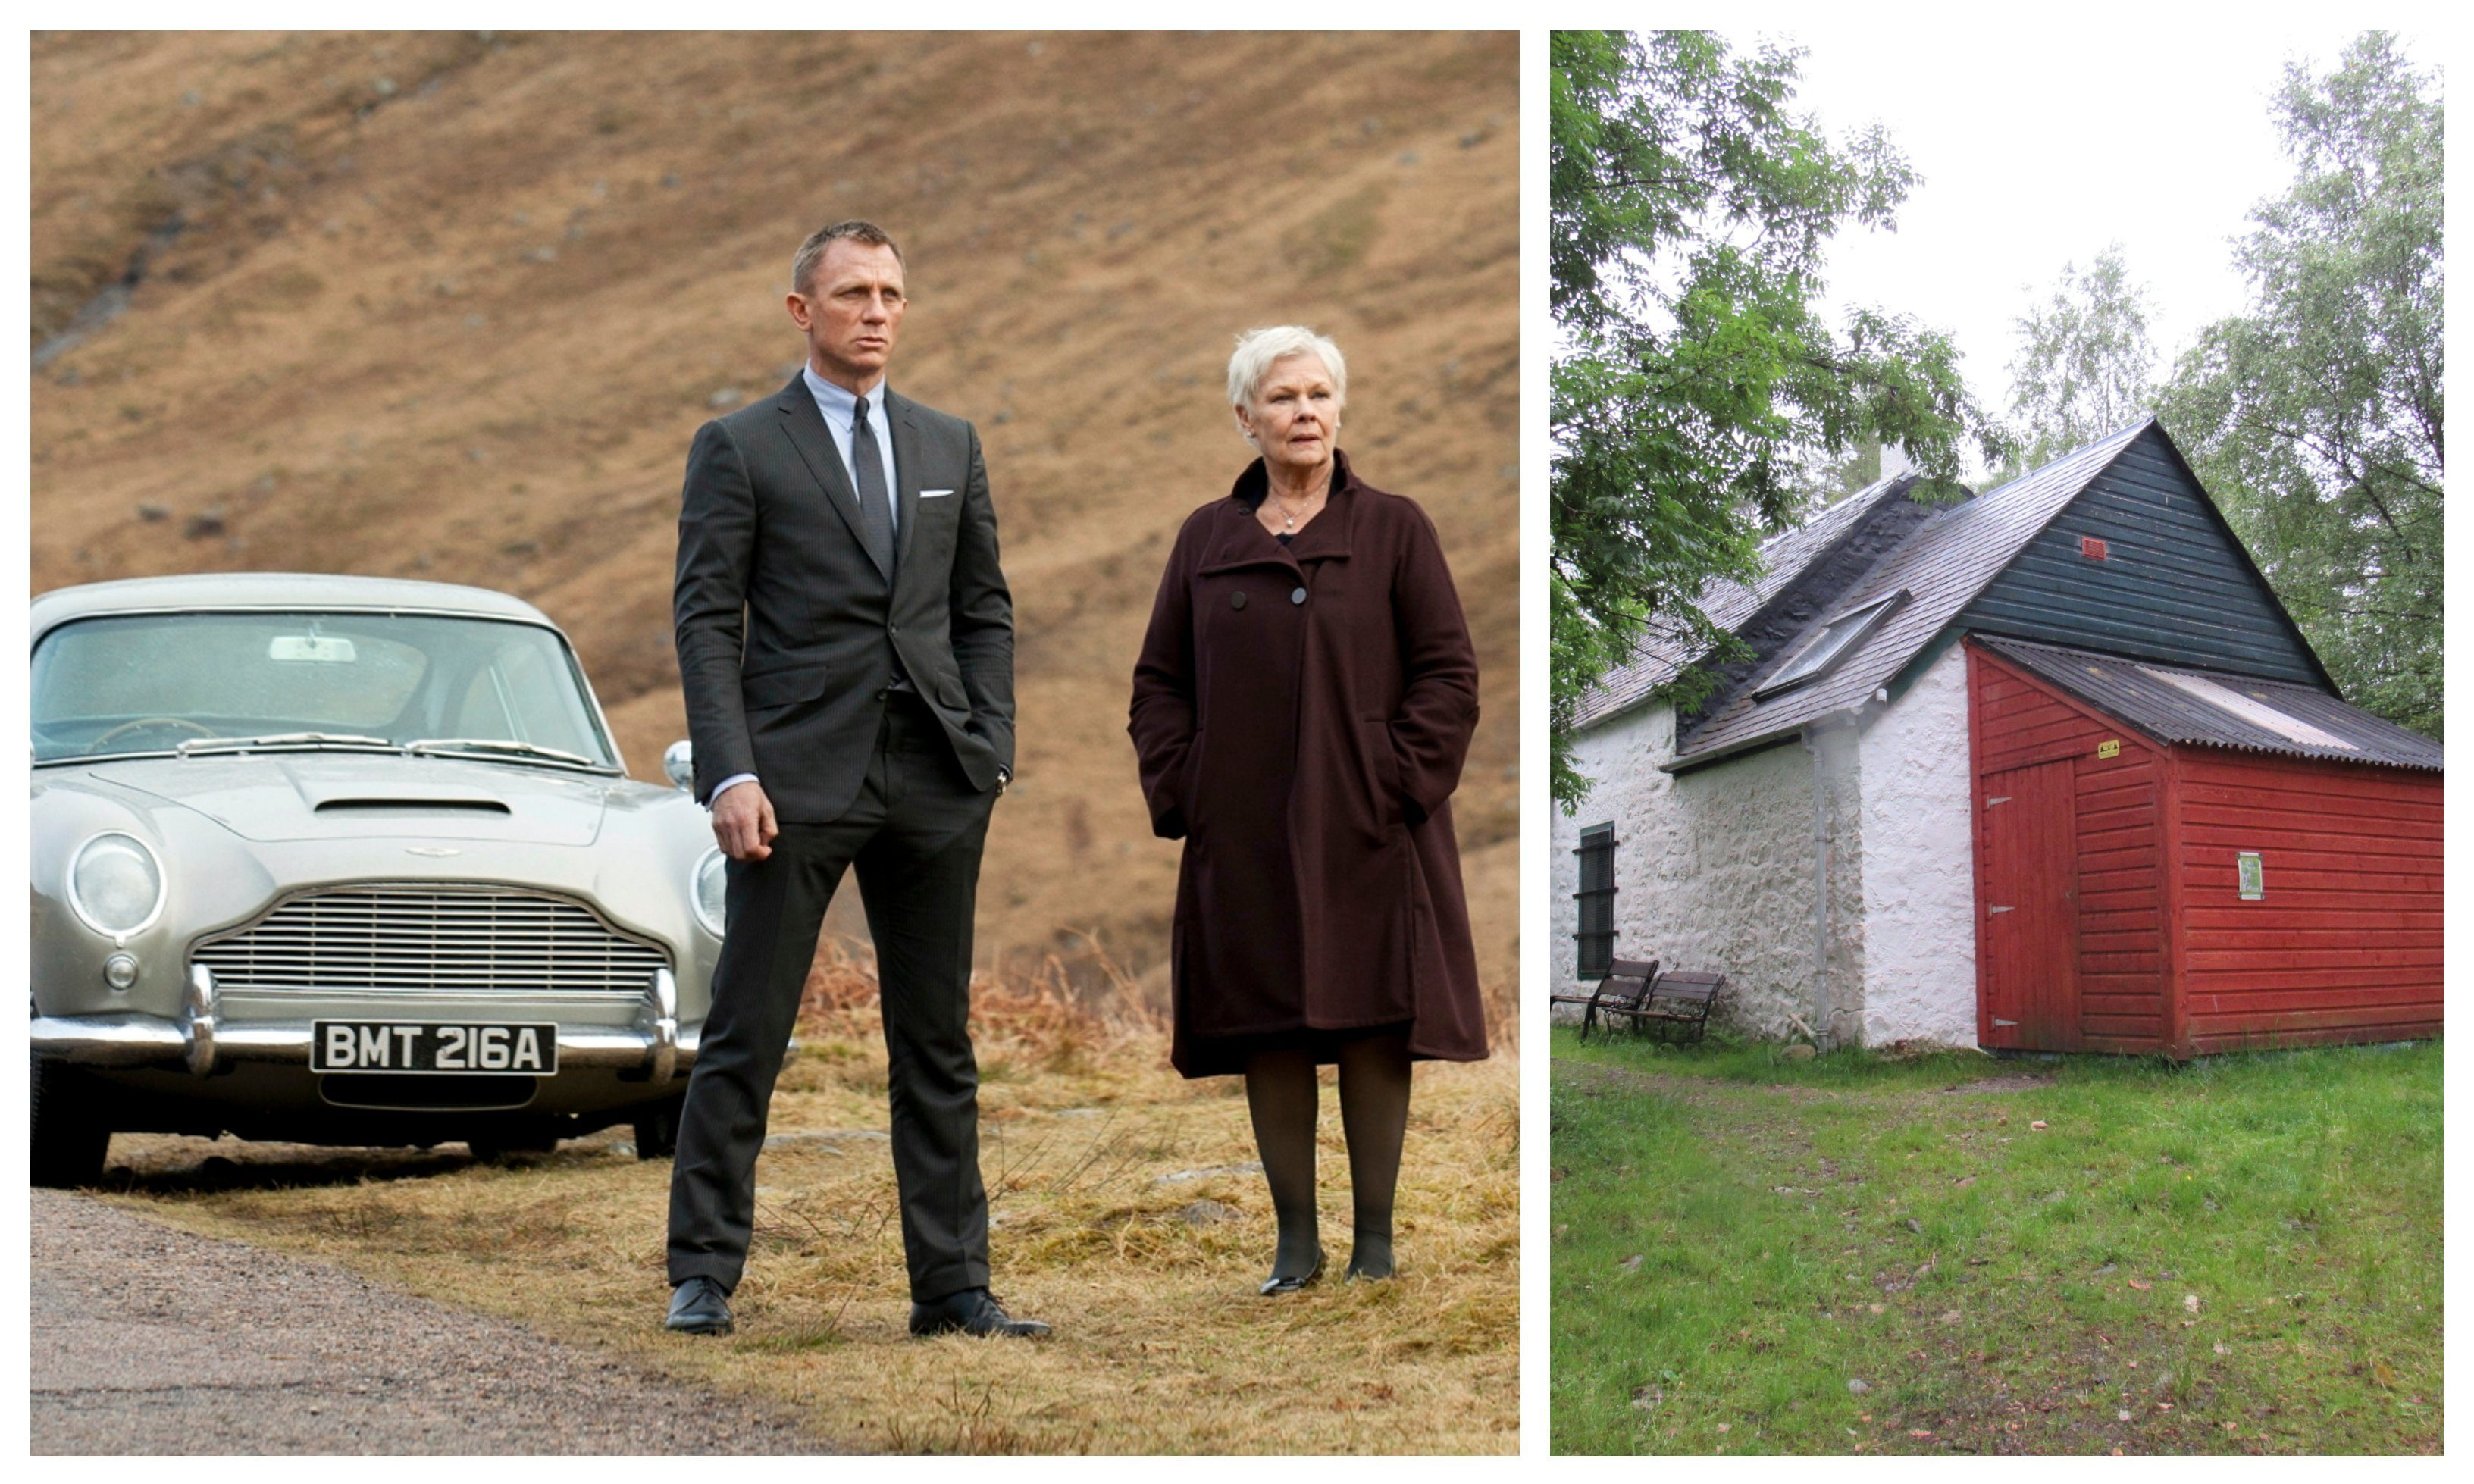 A shot from Skyfall and , right, the hut in question.